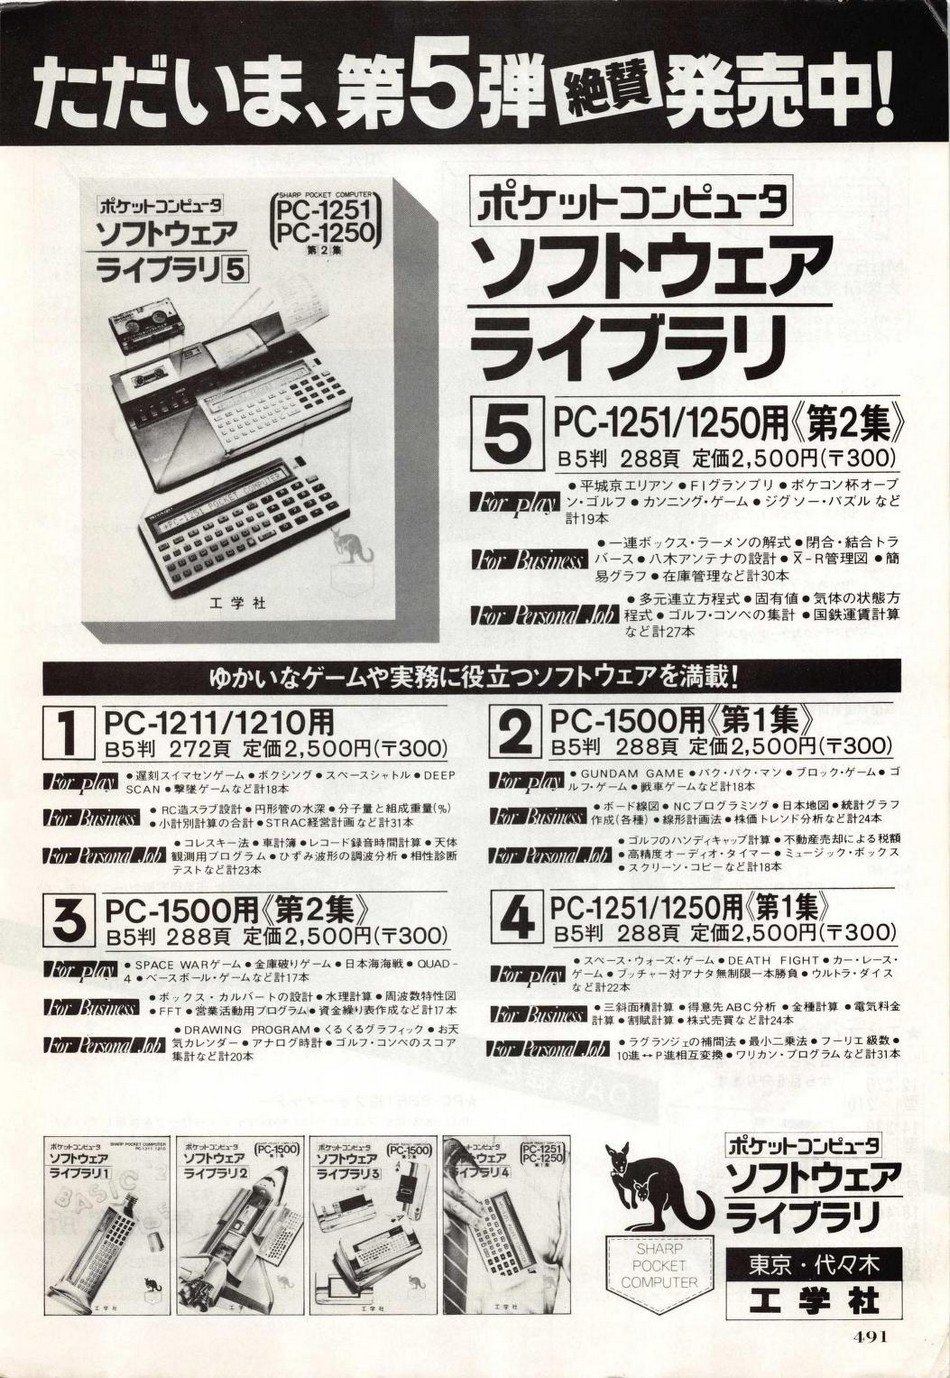 Sharp PC-1250  PC-1251